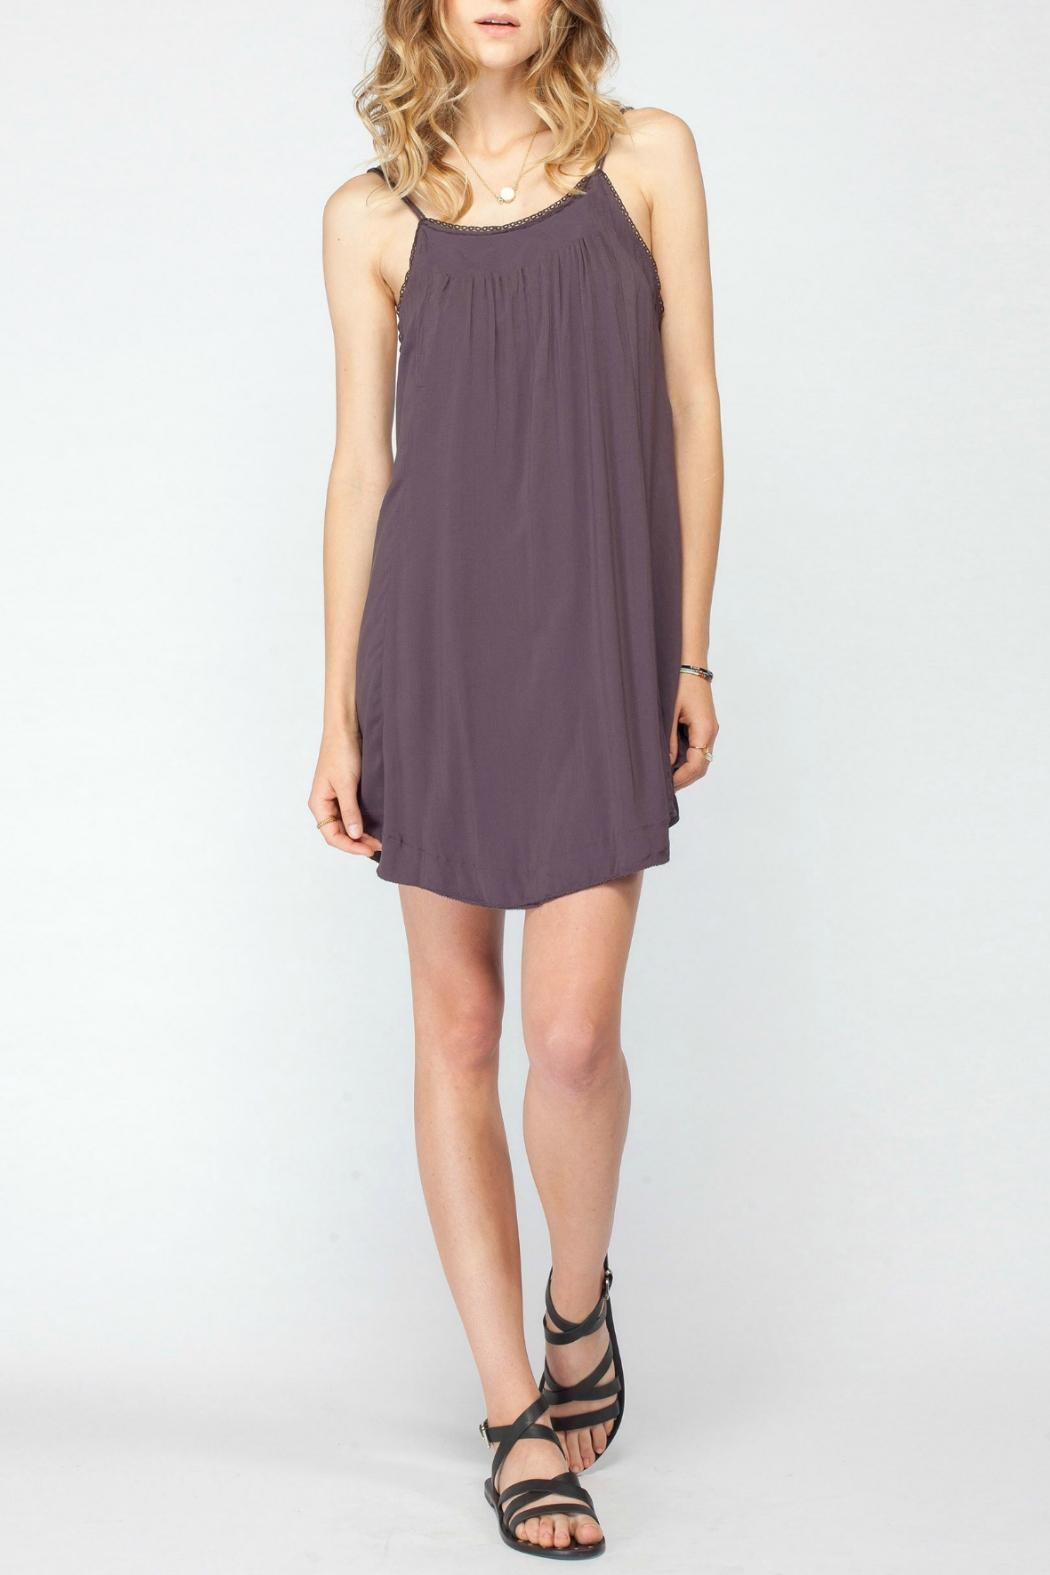 Gentle Fawn Loren Dress - Main Image